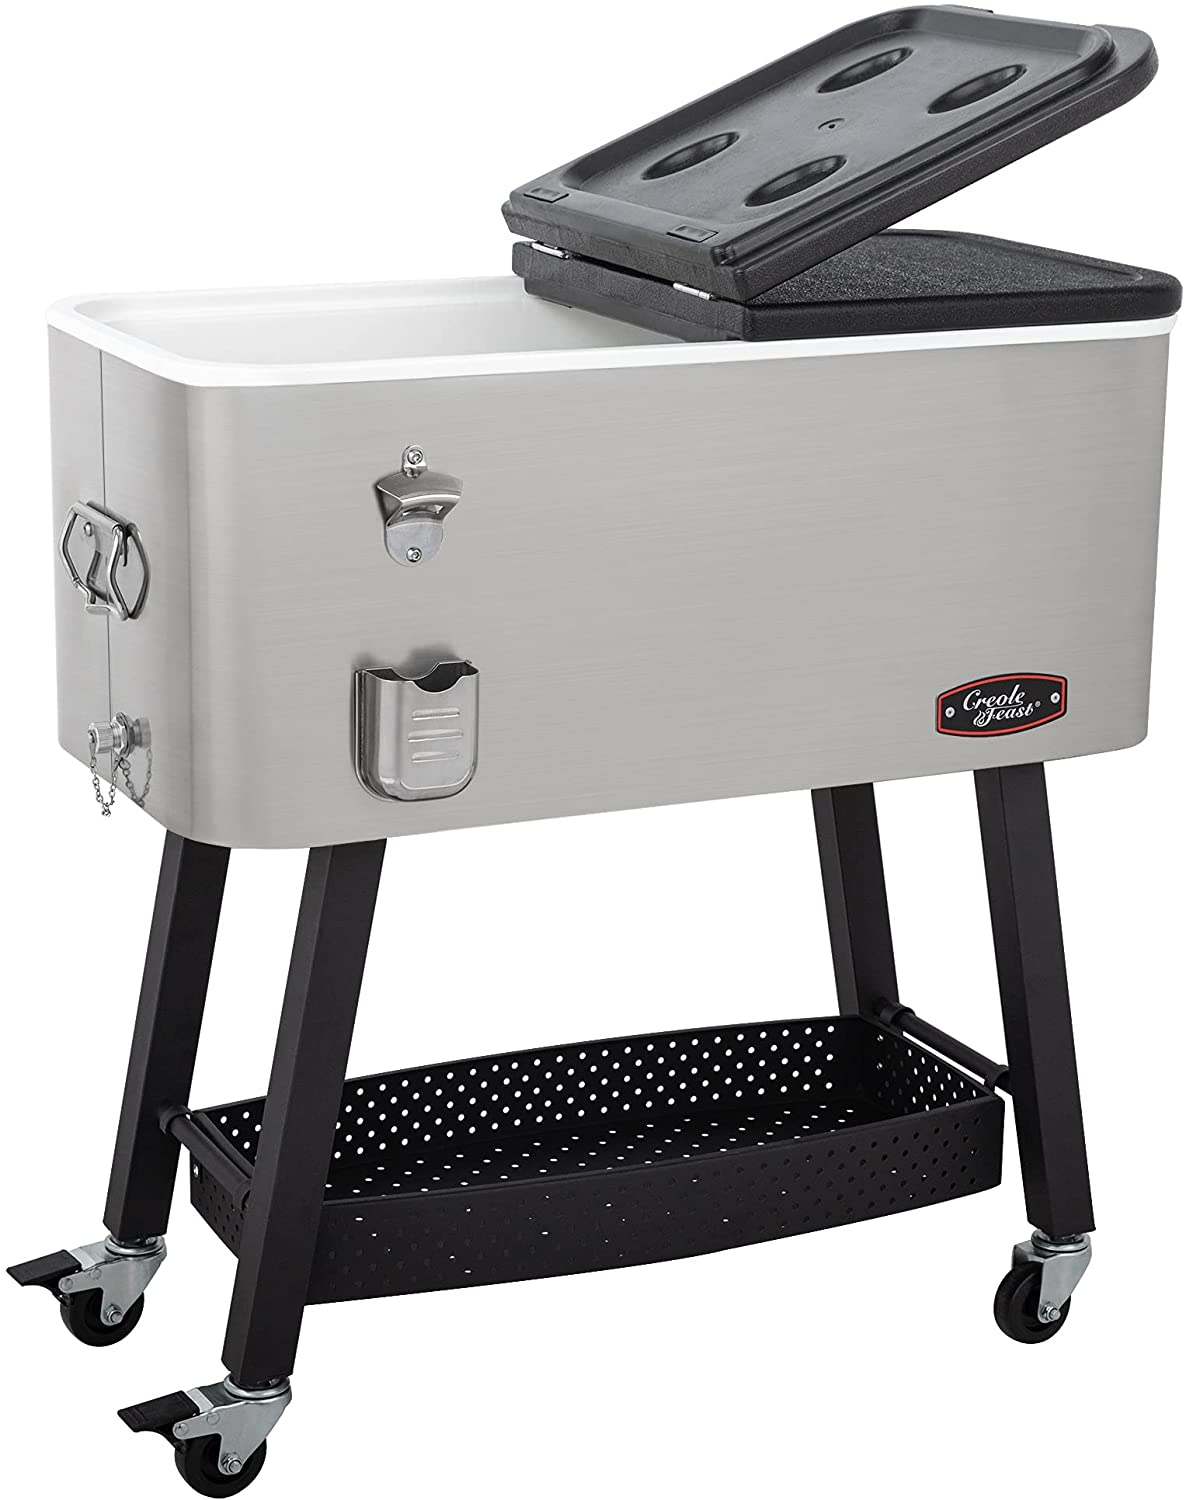 CreoleFeast CL8001S 80-Quart Premium Rolling Cooler, Stainless Steel Portable Cold Drink Beverage Cooler Cart for Outdoor Patio, Tailgating, Poolside BBQ Party, Silver